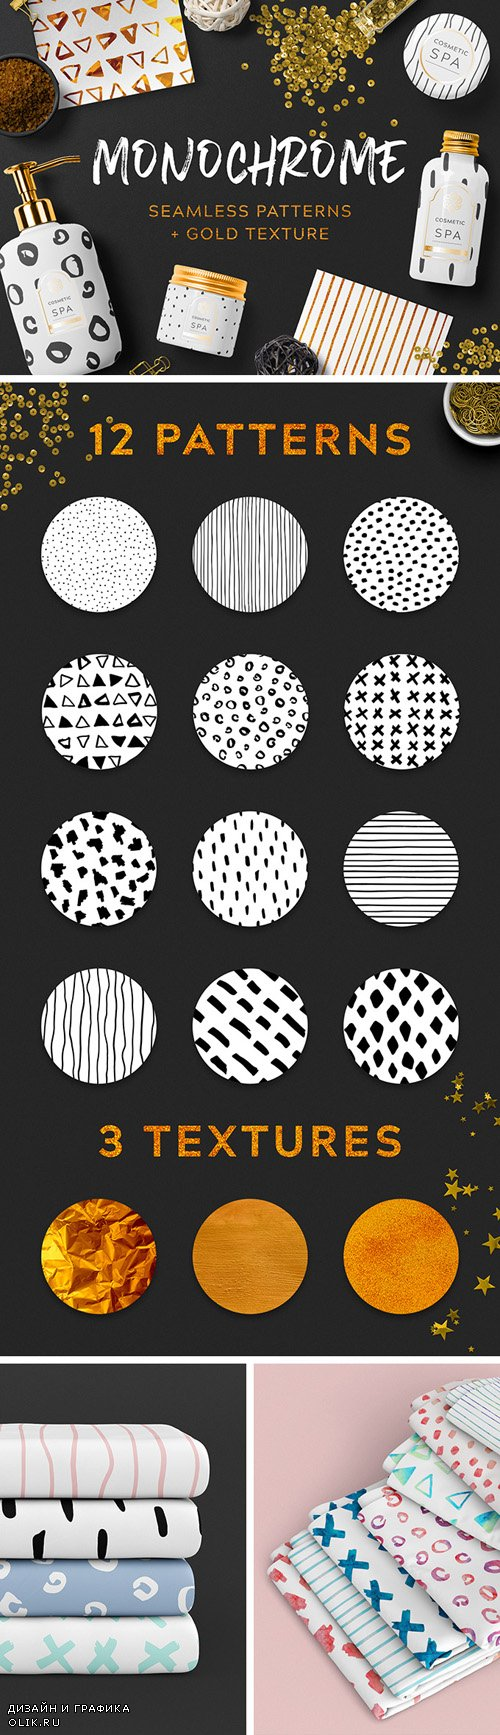 12 Monochrome Seamless Patterns + Gold Textures